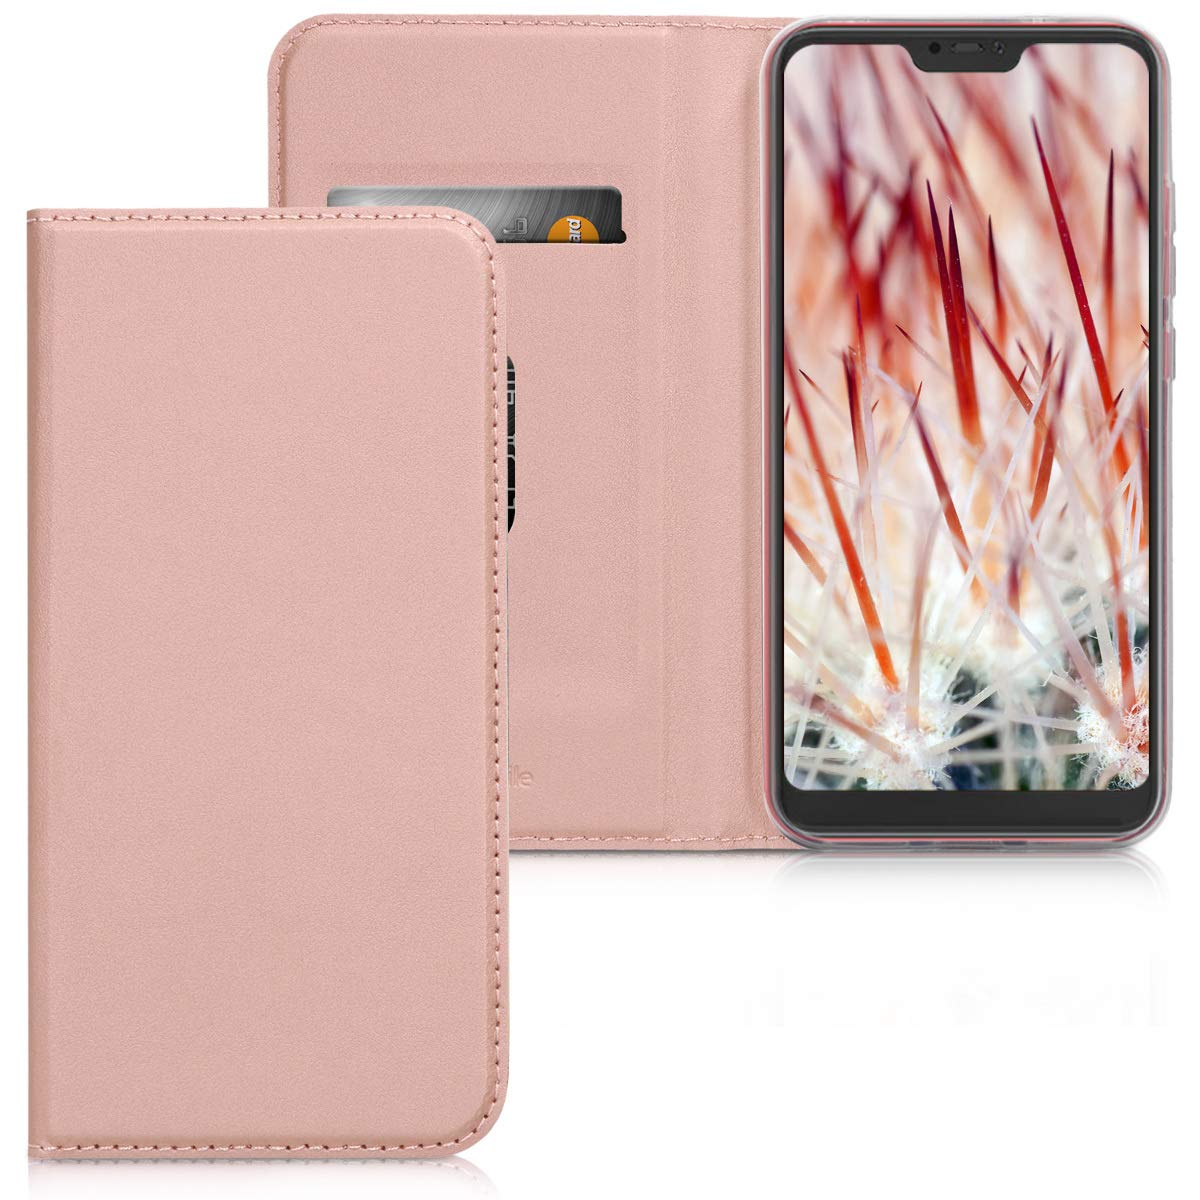 kwmobile Flip Case for Xiaomi Redmi 6 Pro/Mi A2 Lite - Smooth PU Leather Wallet Folio Cover with Stand Feature - Black KW-Commerce 45618.01_m001172